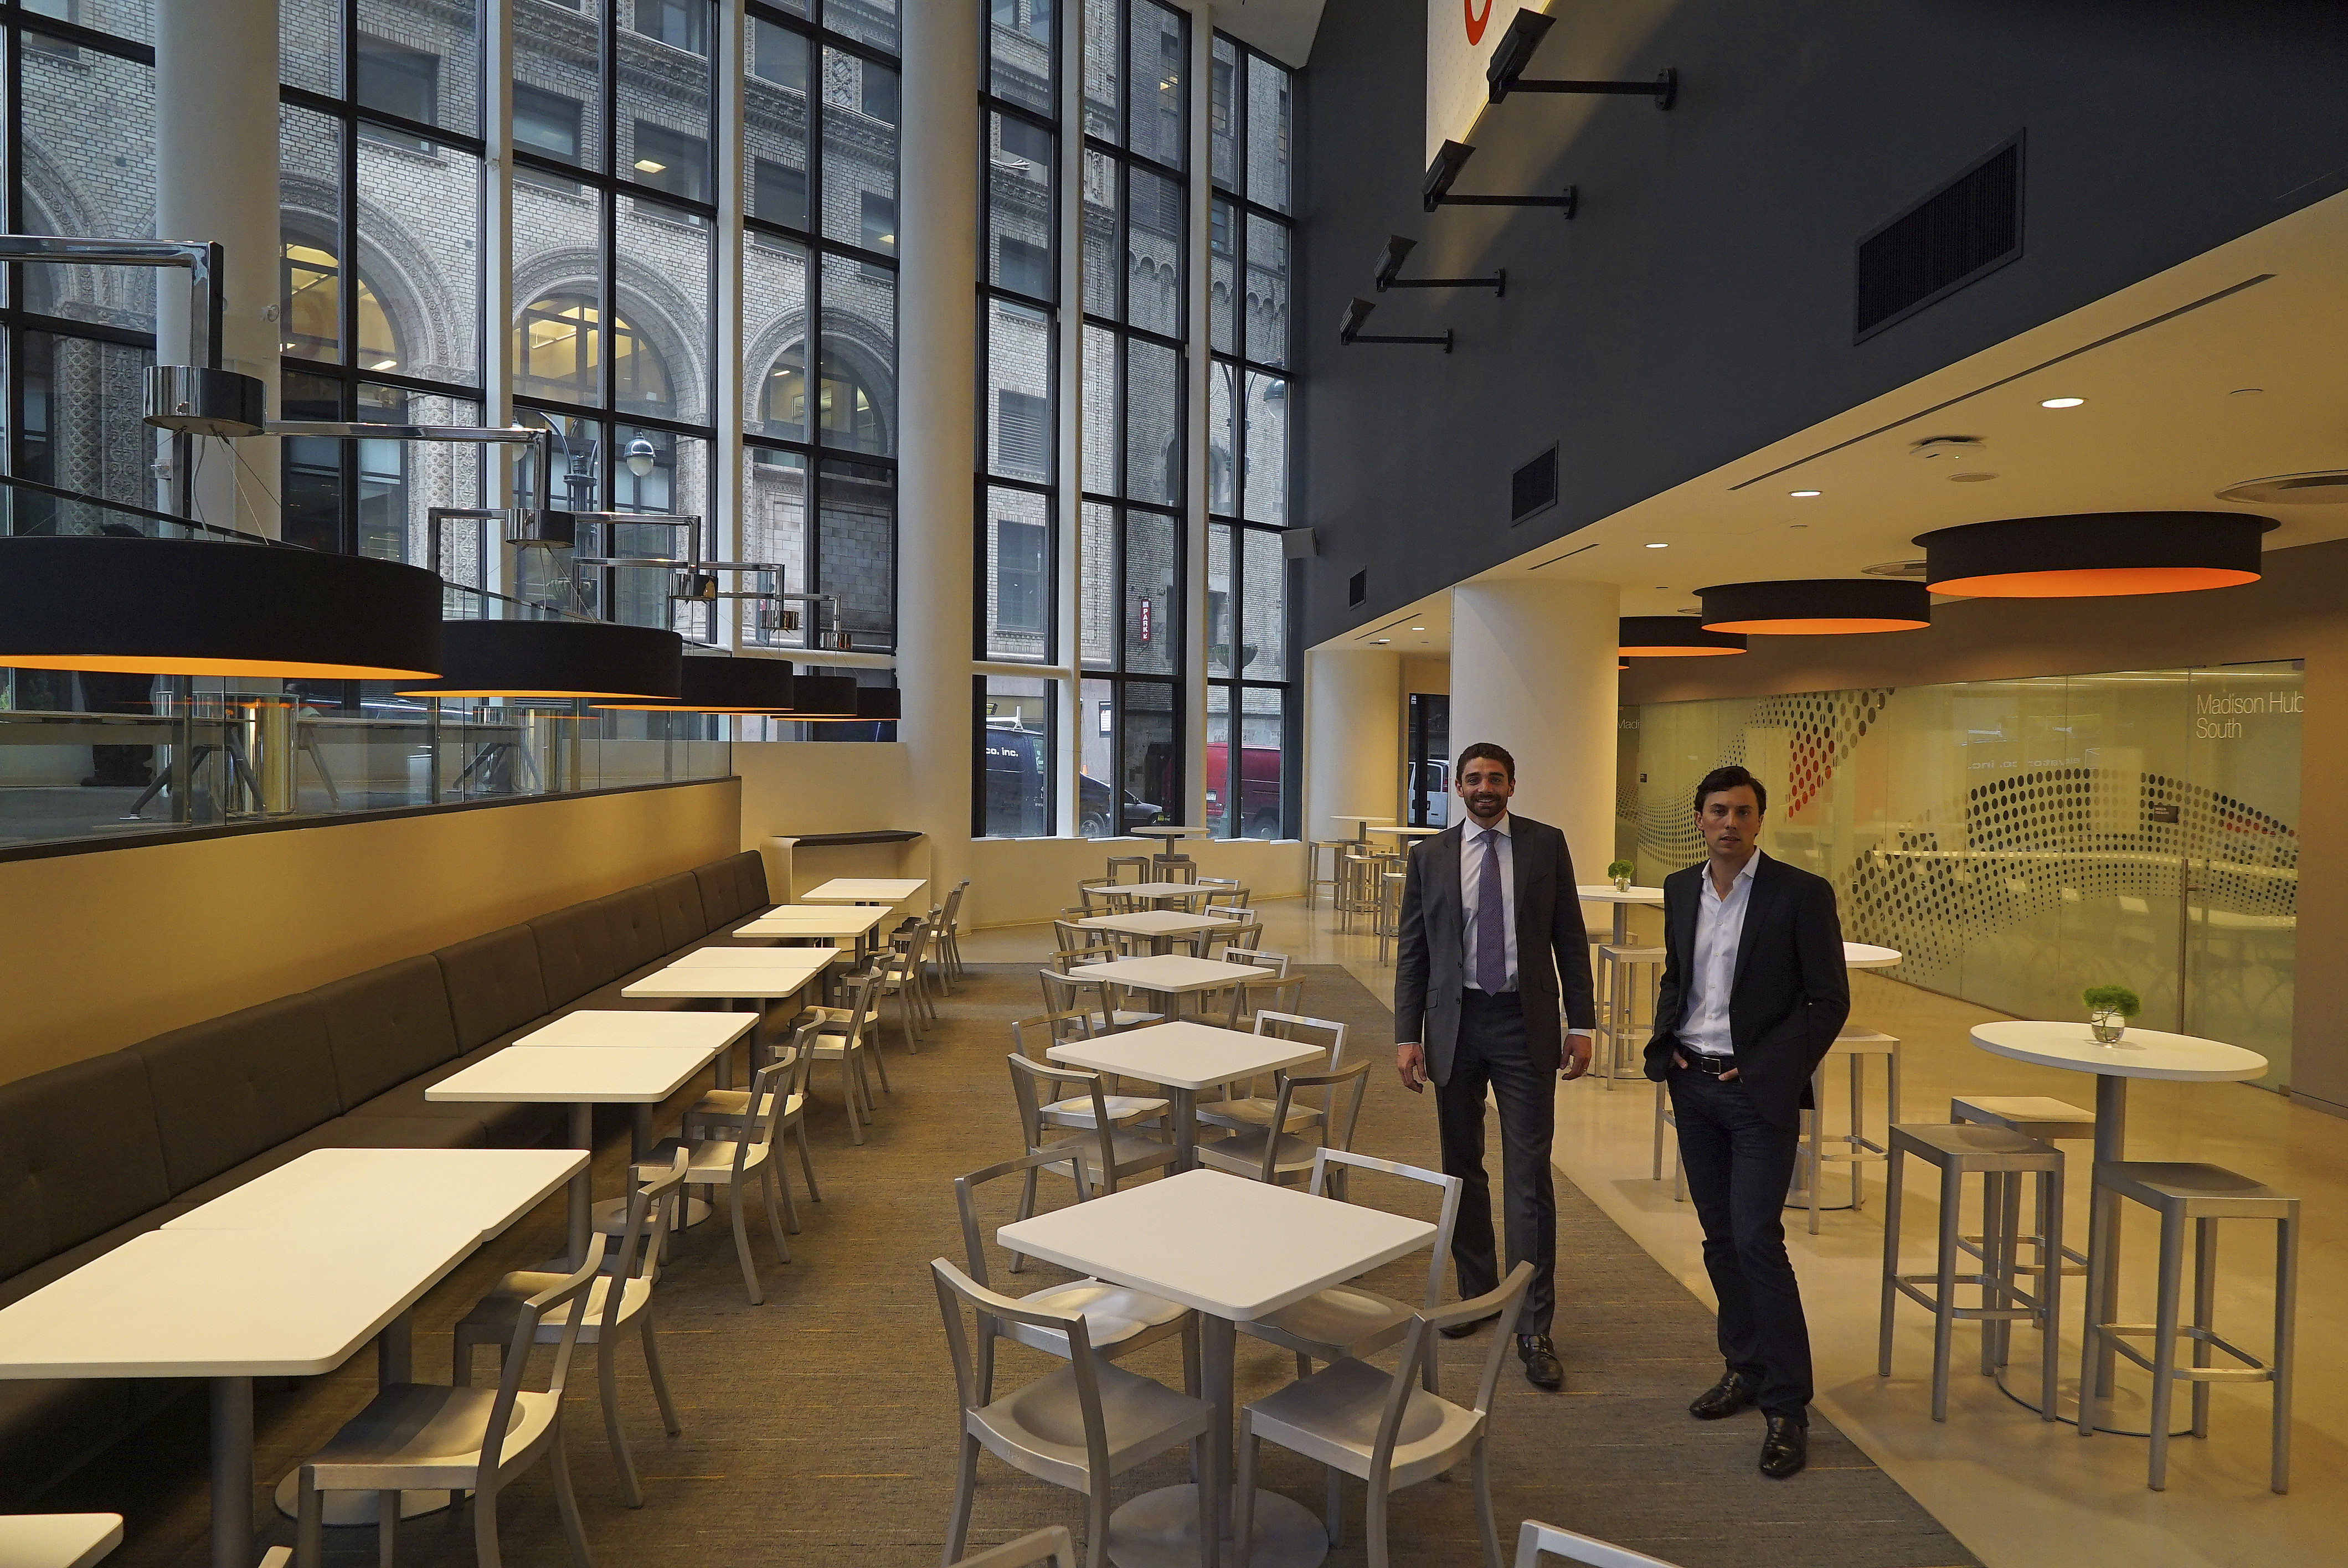 Ryan Simonetti, left, and Christopher Kelly, co-founders of Convene, at one of the company?s meeting spaces on Park Avenue in New York.